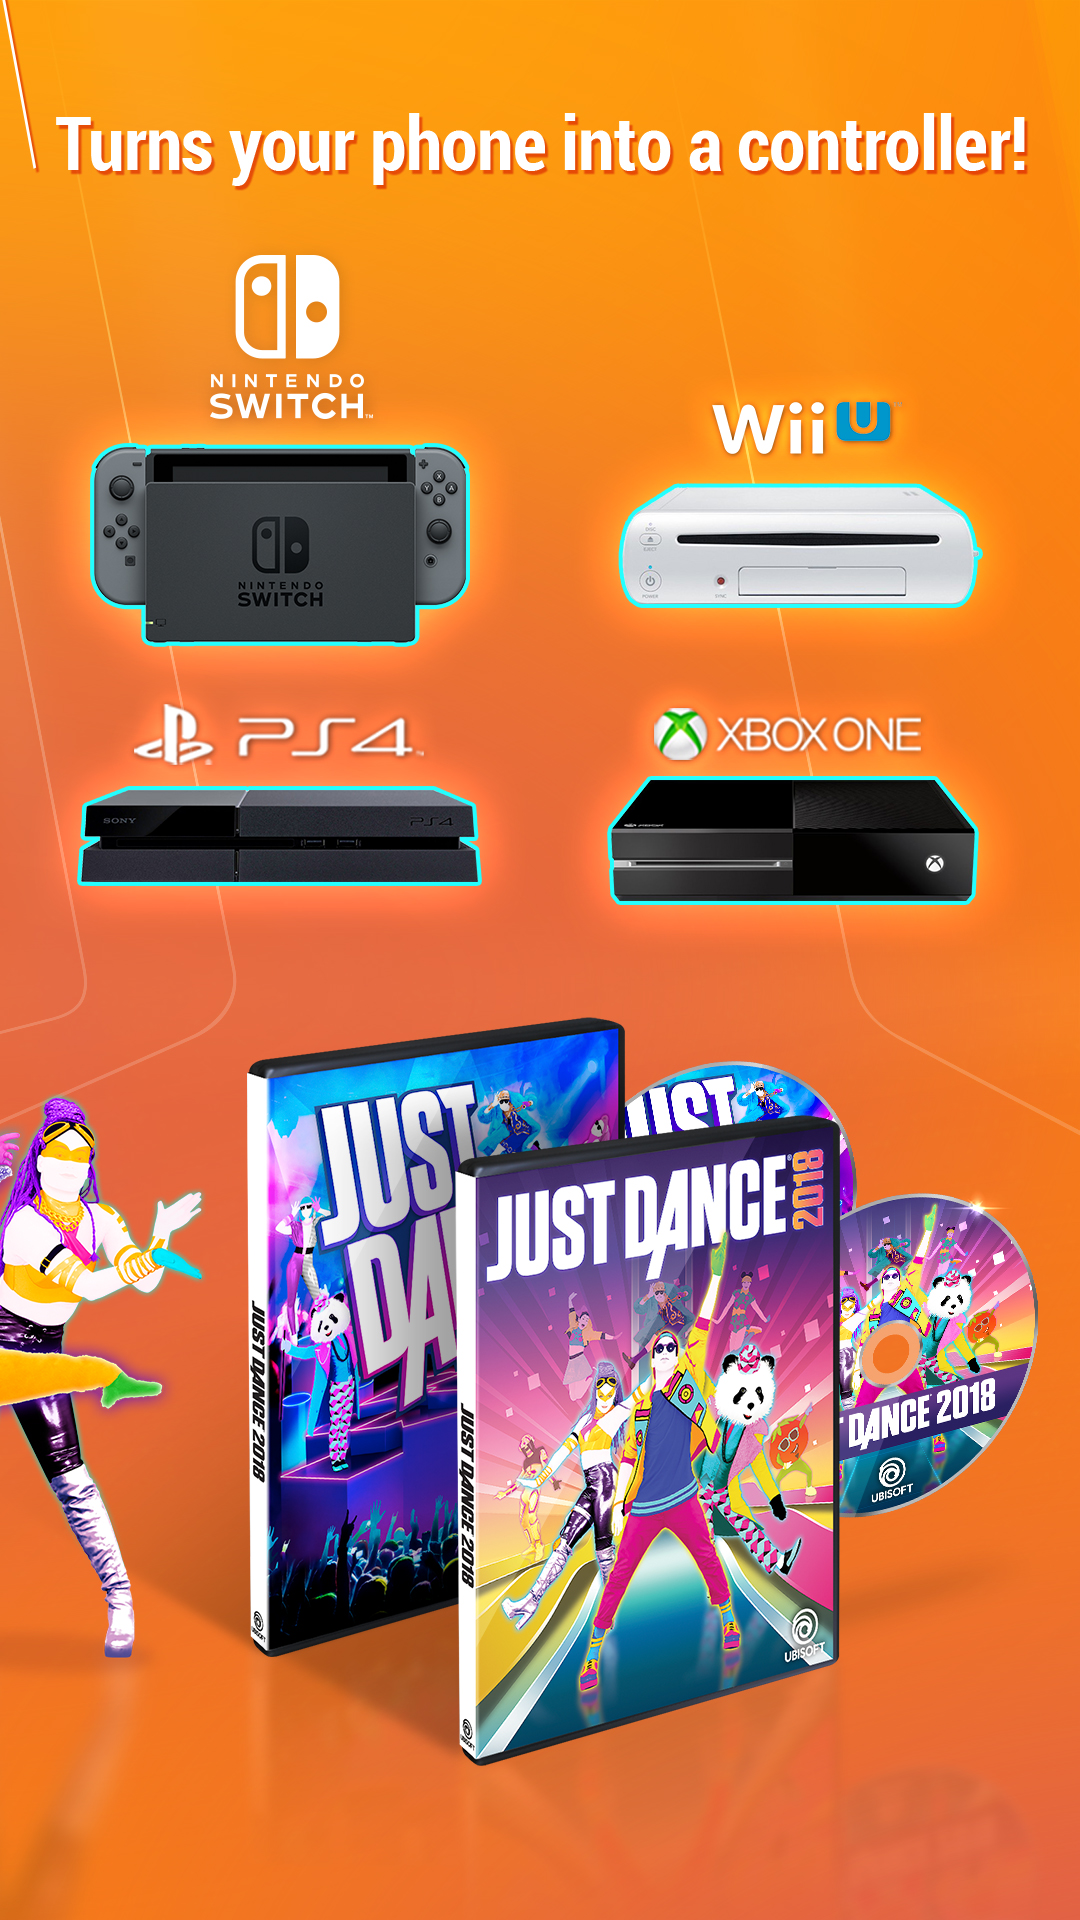 Amazon.com: Just Dance Controller: Appstore for Android